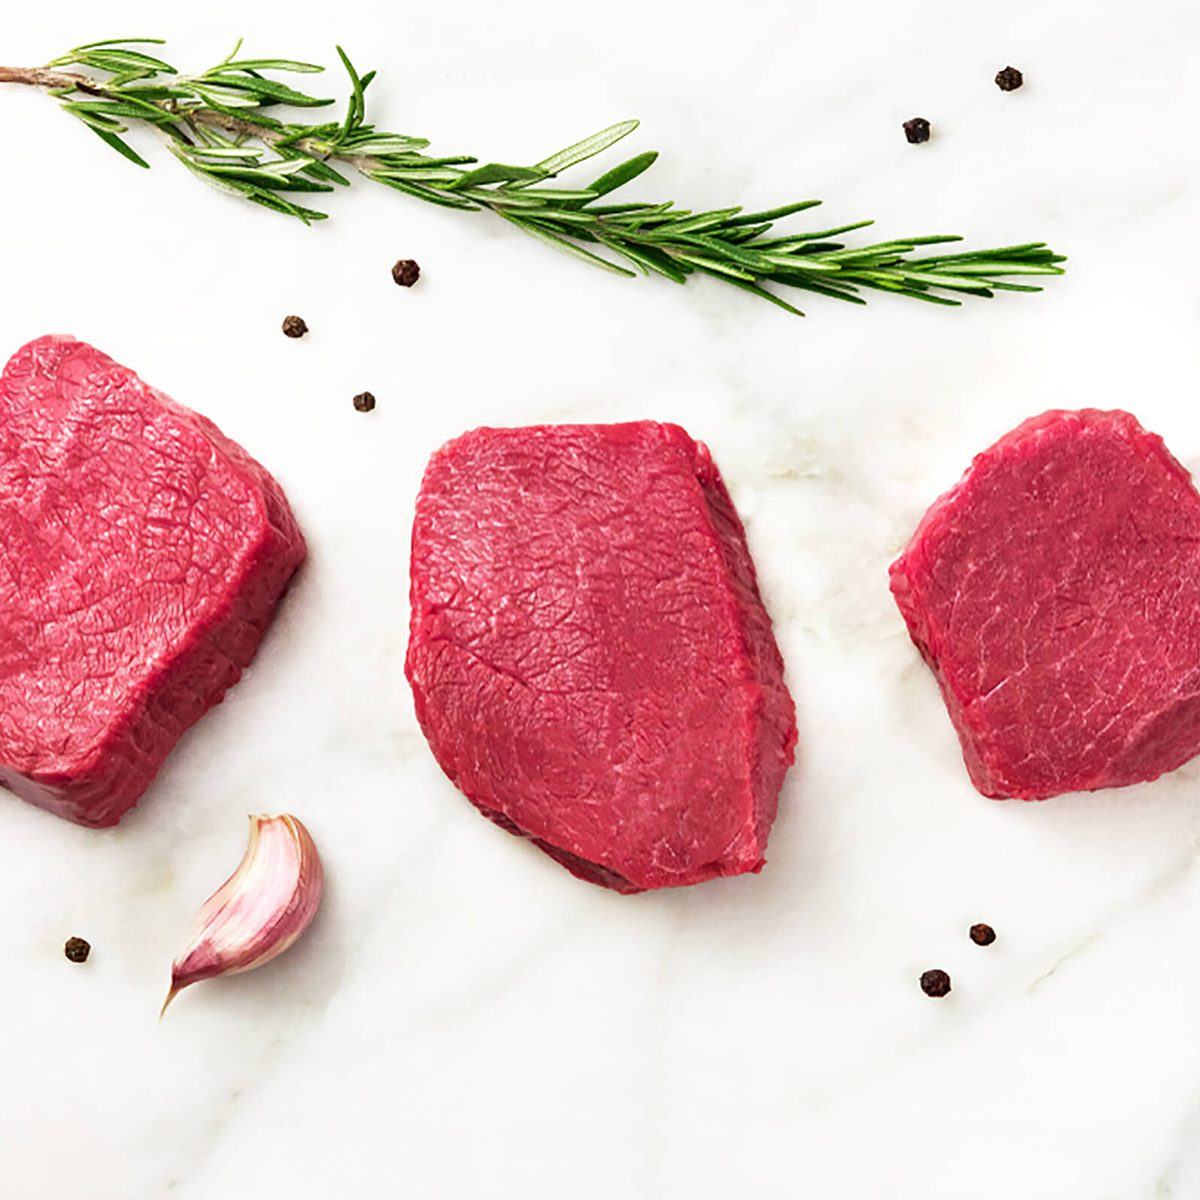 Three slices of raw meat, beef fillet, shot from above on a white marble table with a sprig of rosemary, garlic cloves, salt, and pepper